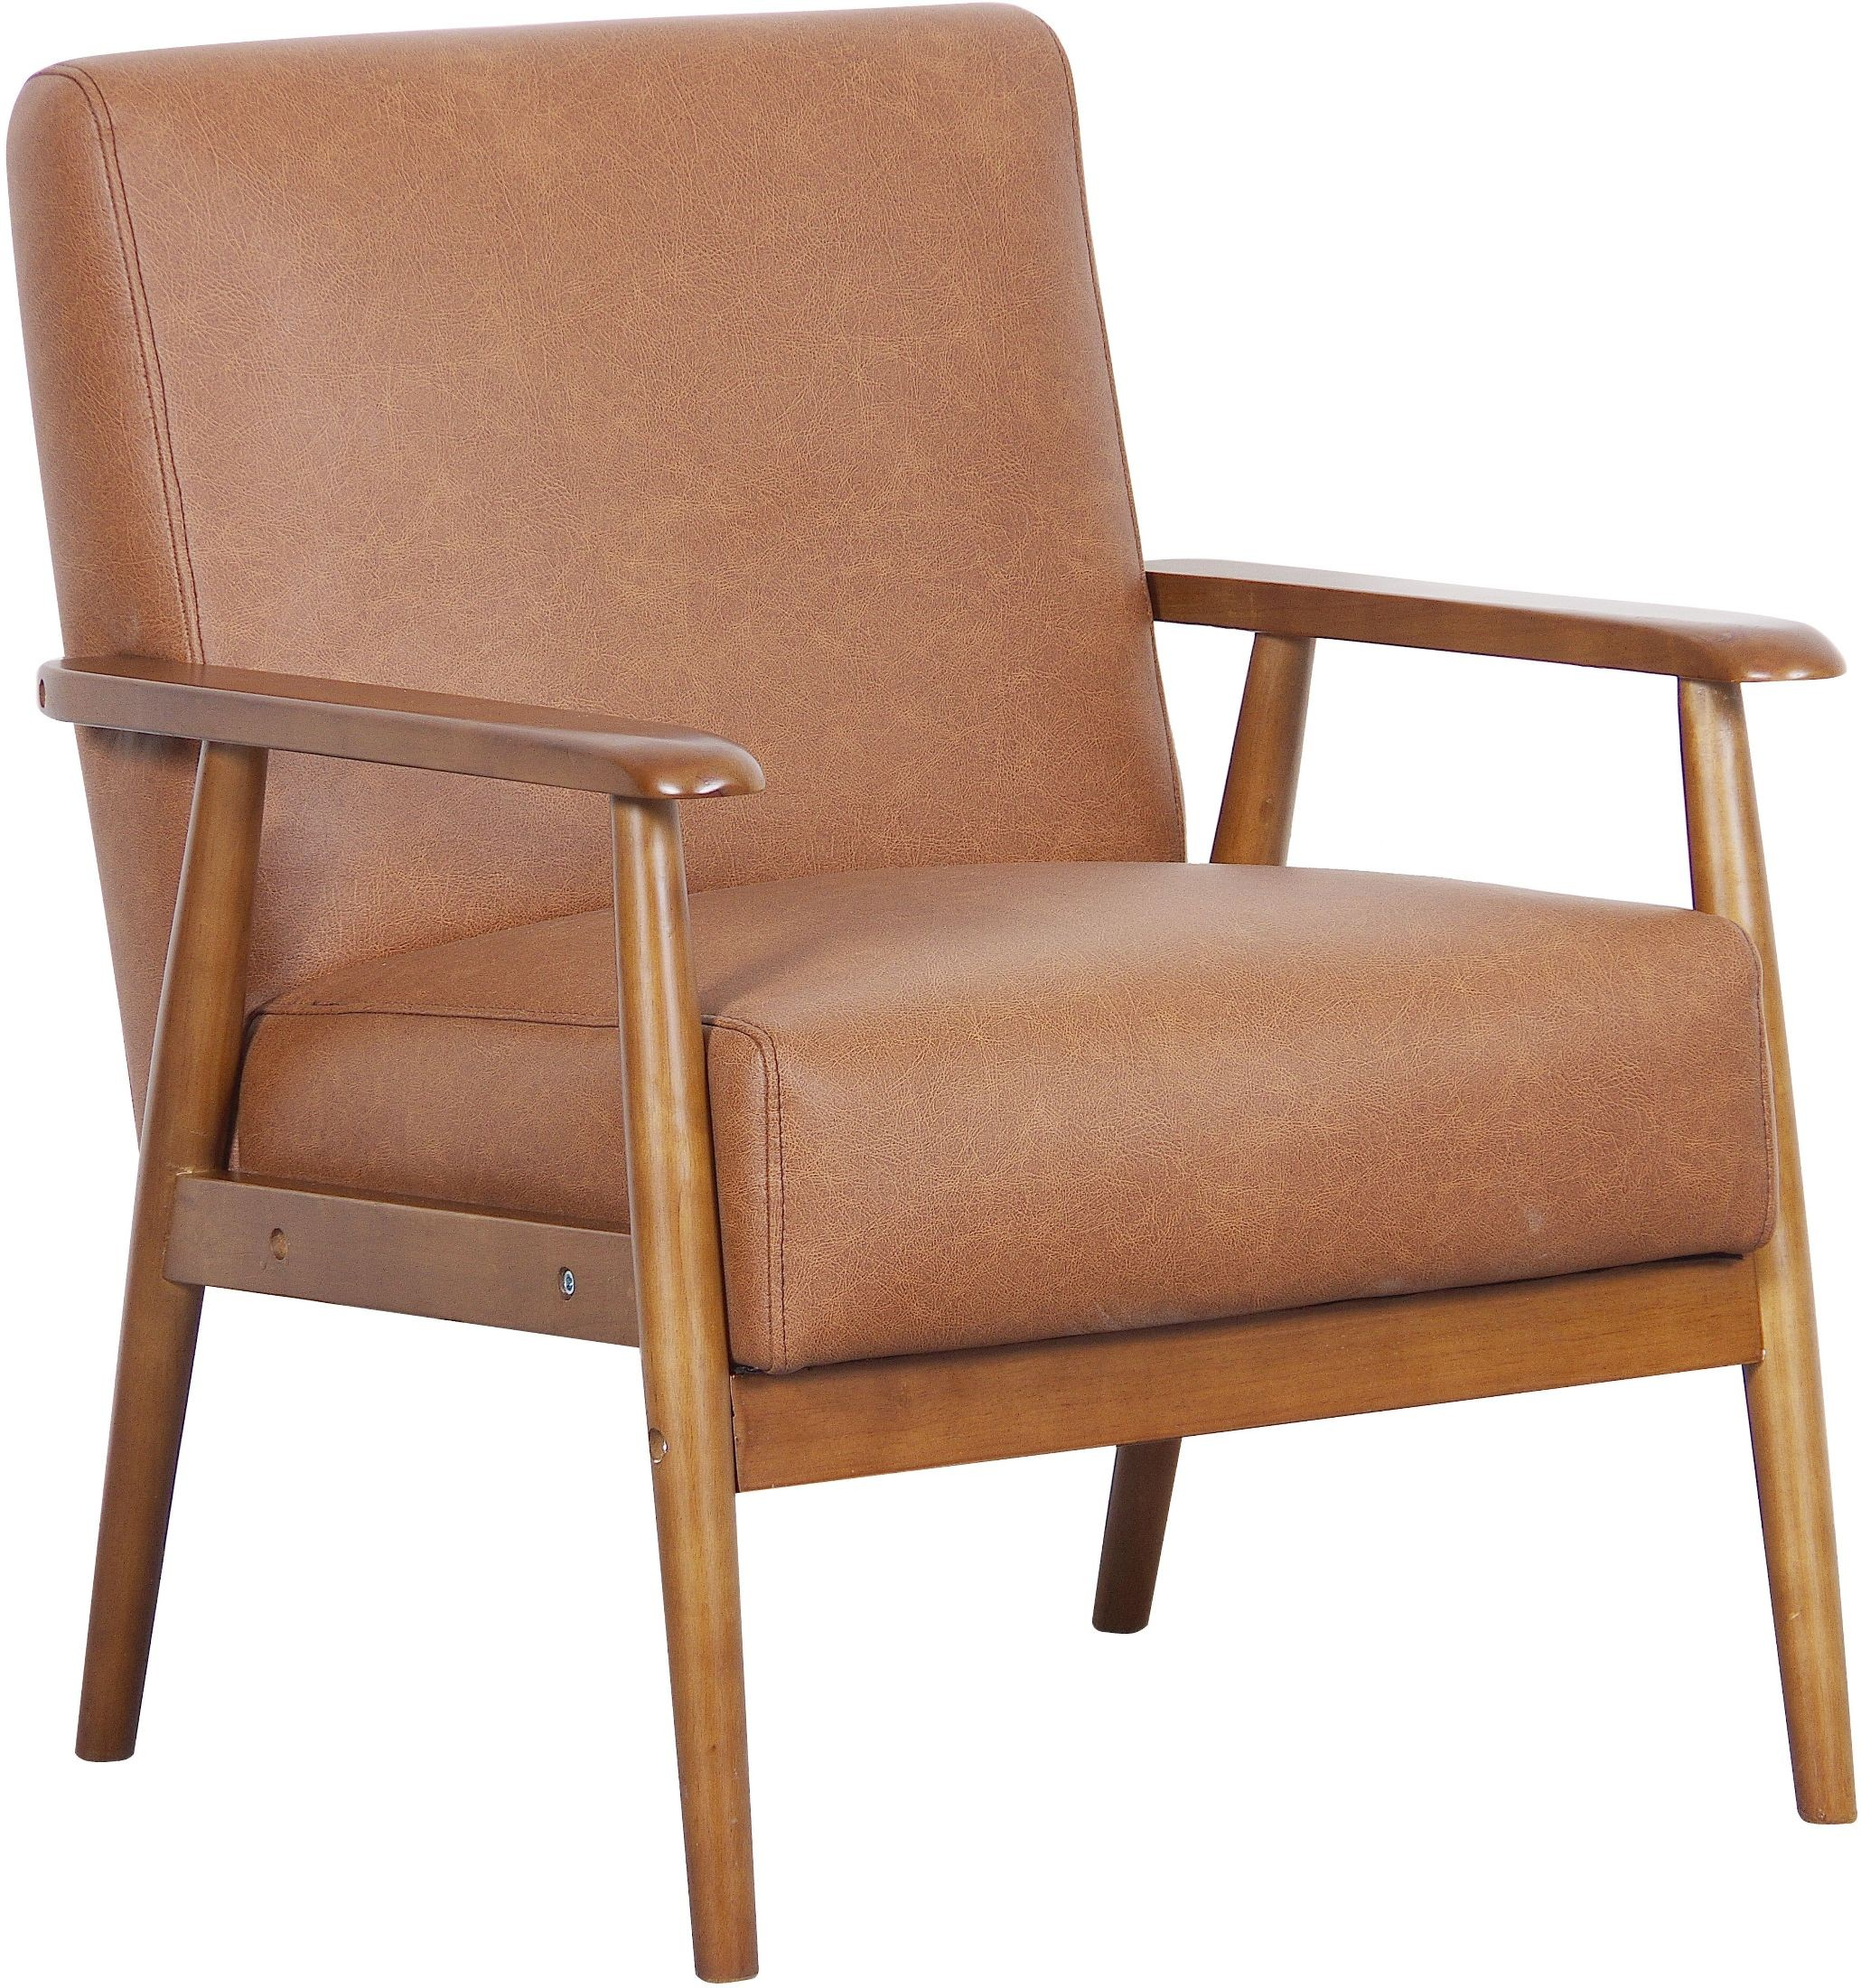 wood frame accent chairs. Lummus Cognac Wood Frame Upholstered Accent Chair Chairs U